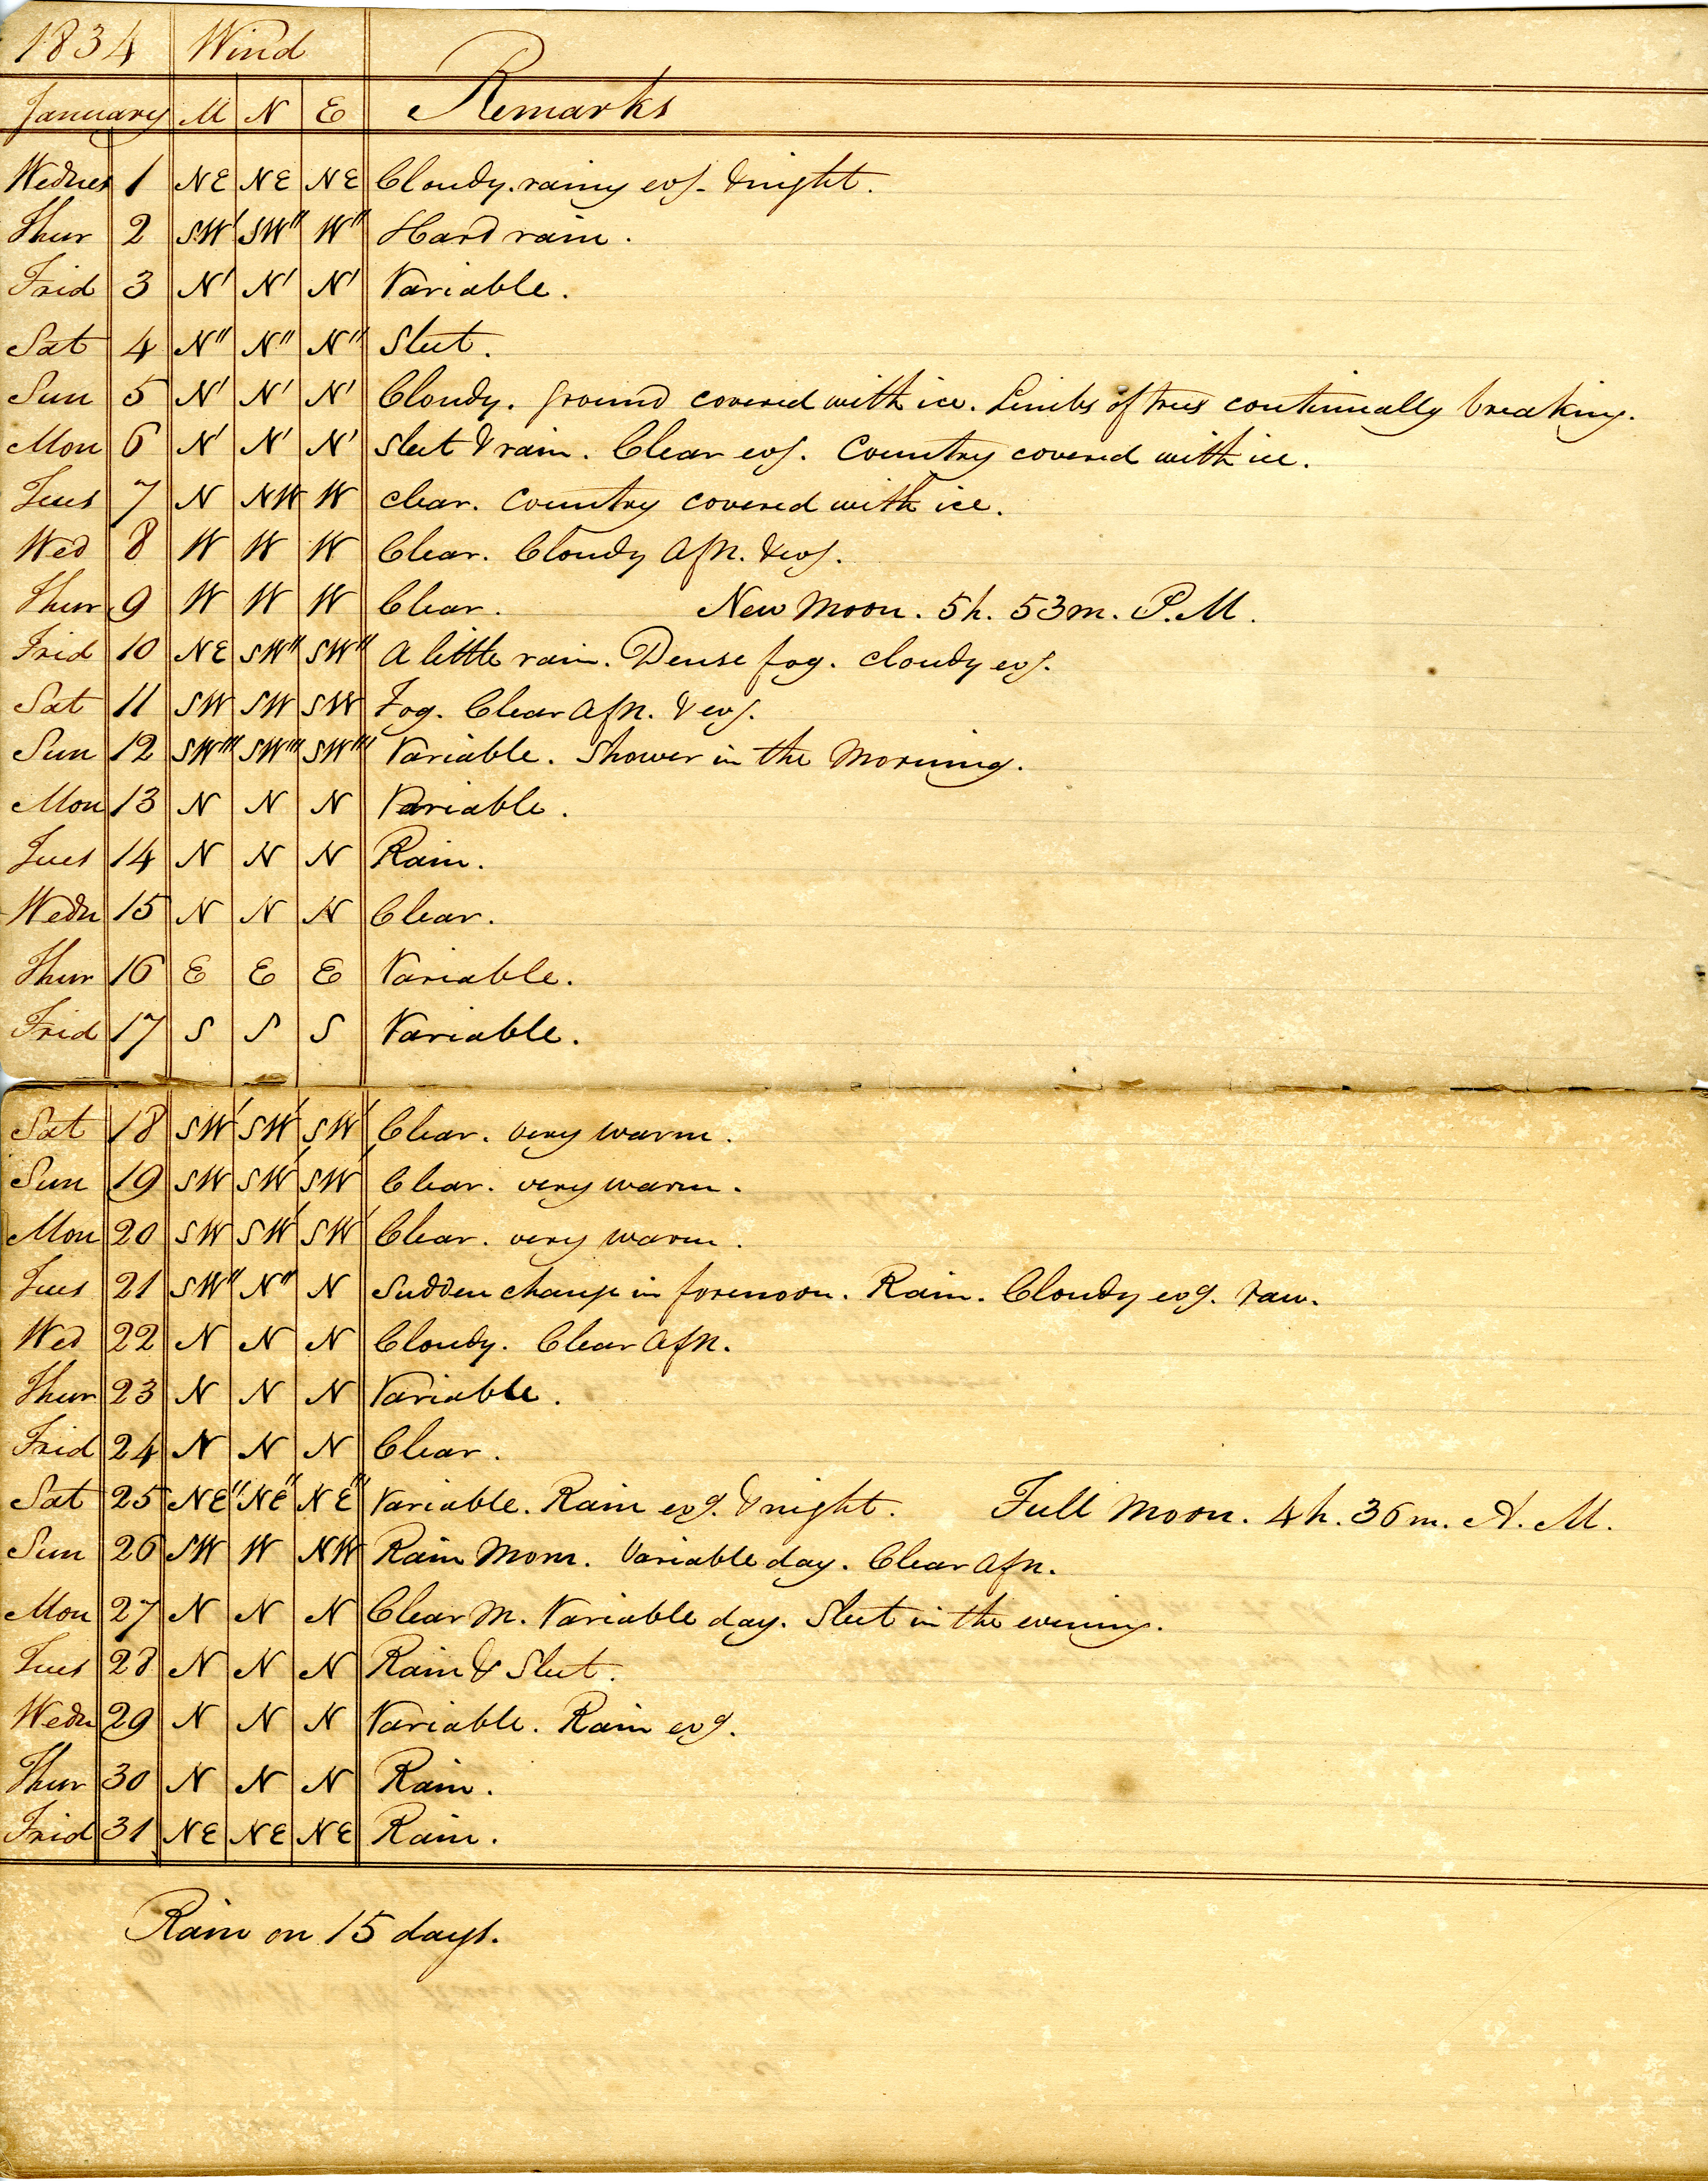 Volume 1: Daily Meteorological Observations, January 1834